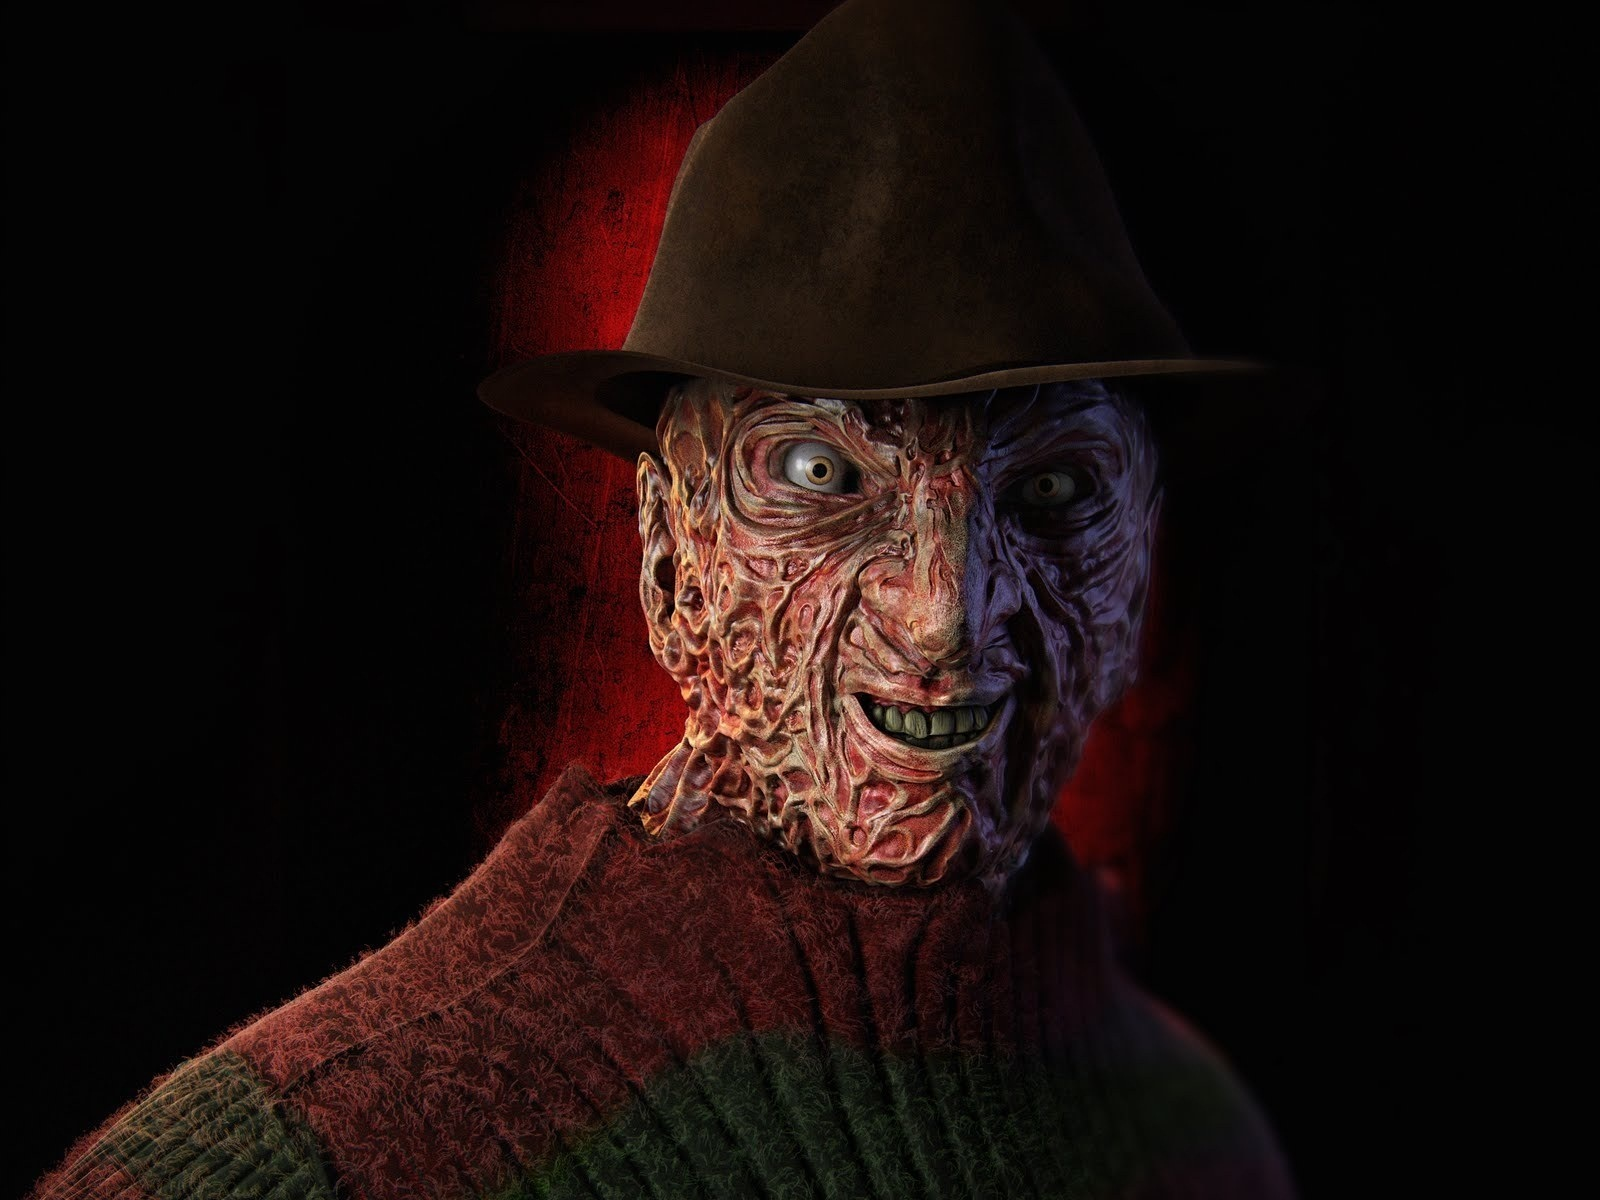 Freddy Krueger Wallpapers High Quality